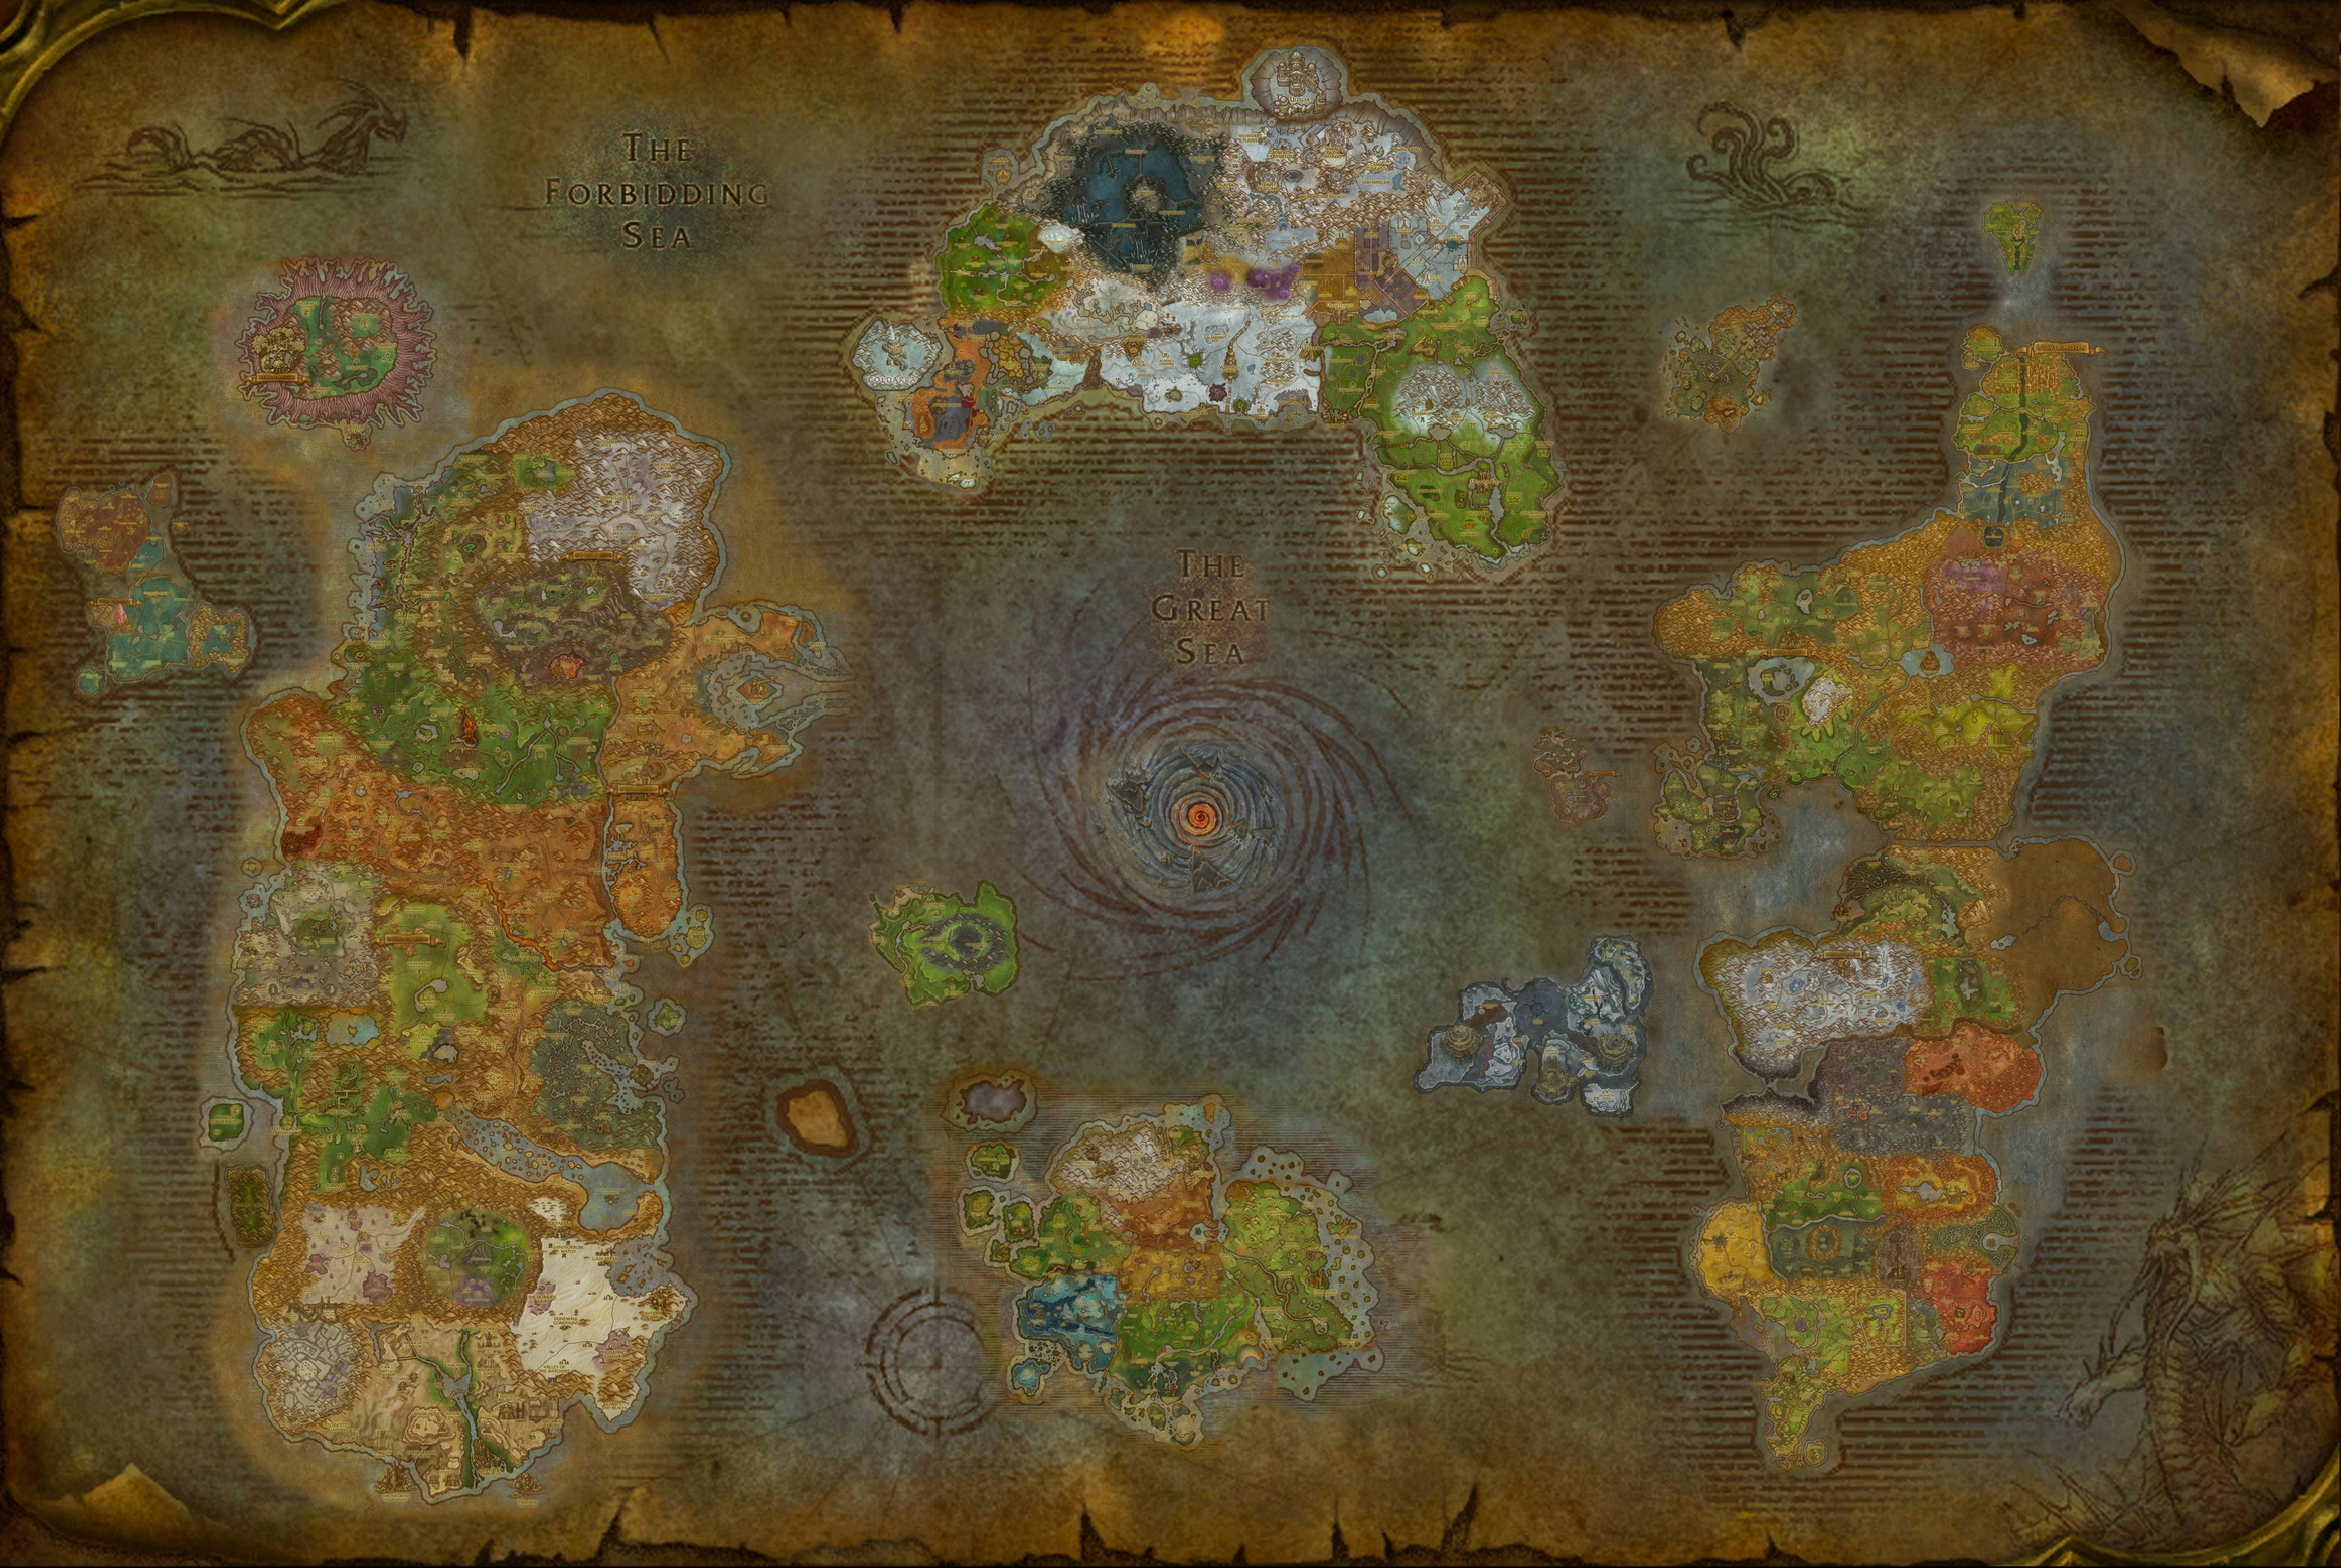 Across the board games tabletop game design art production azeroth gumiabroncs Choice Image